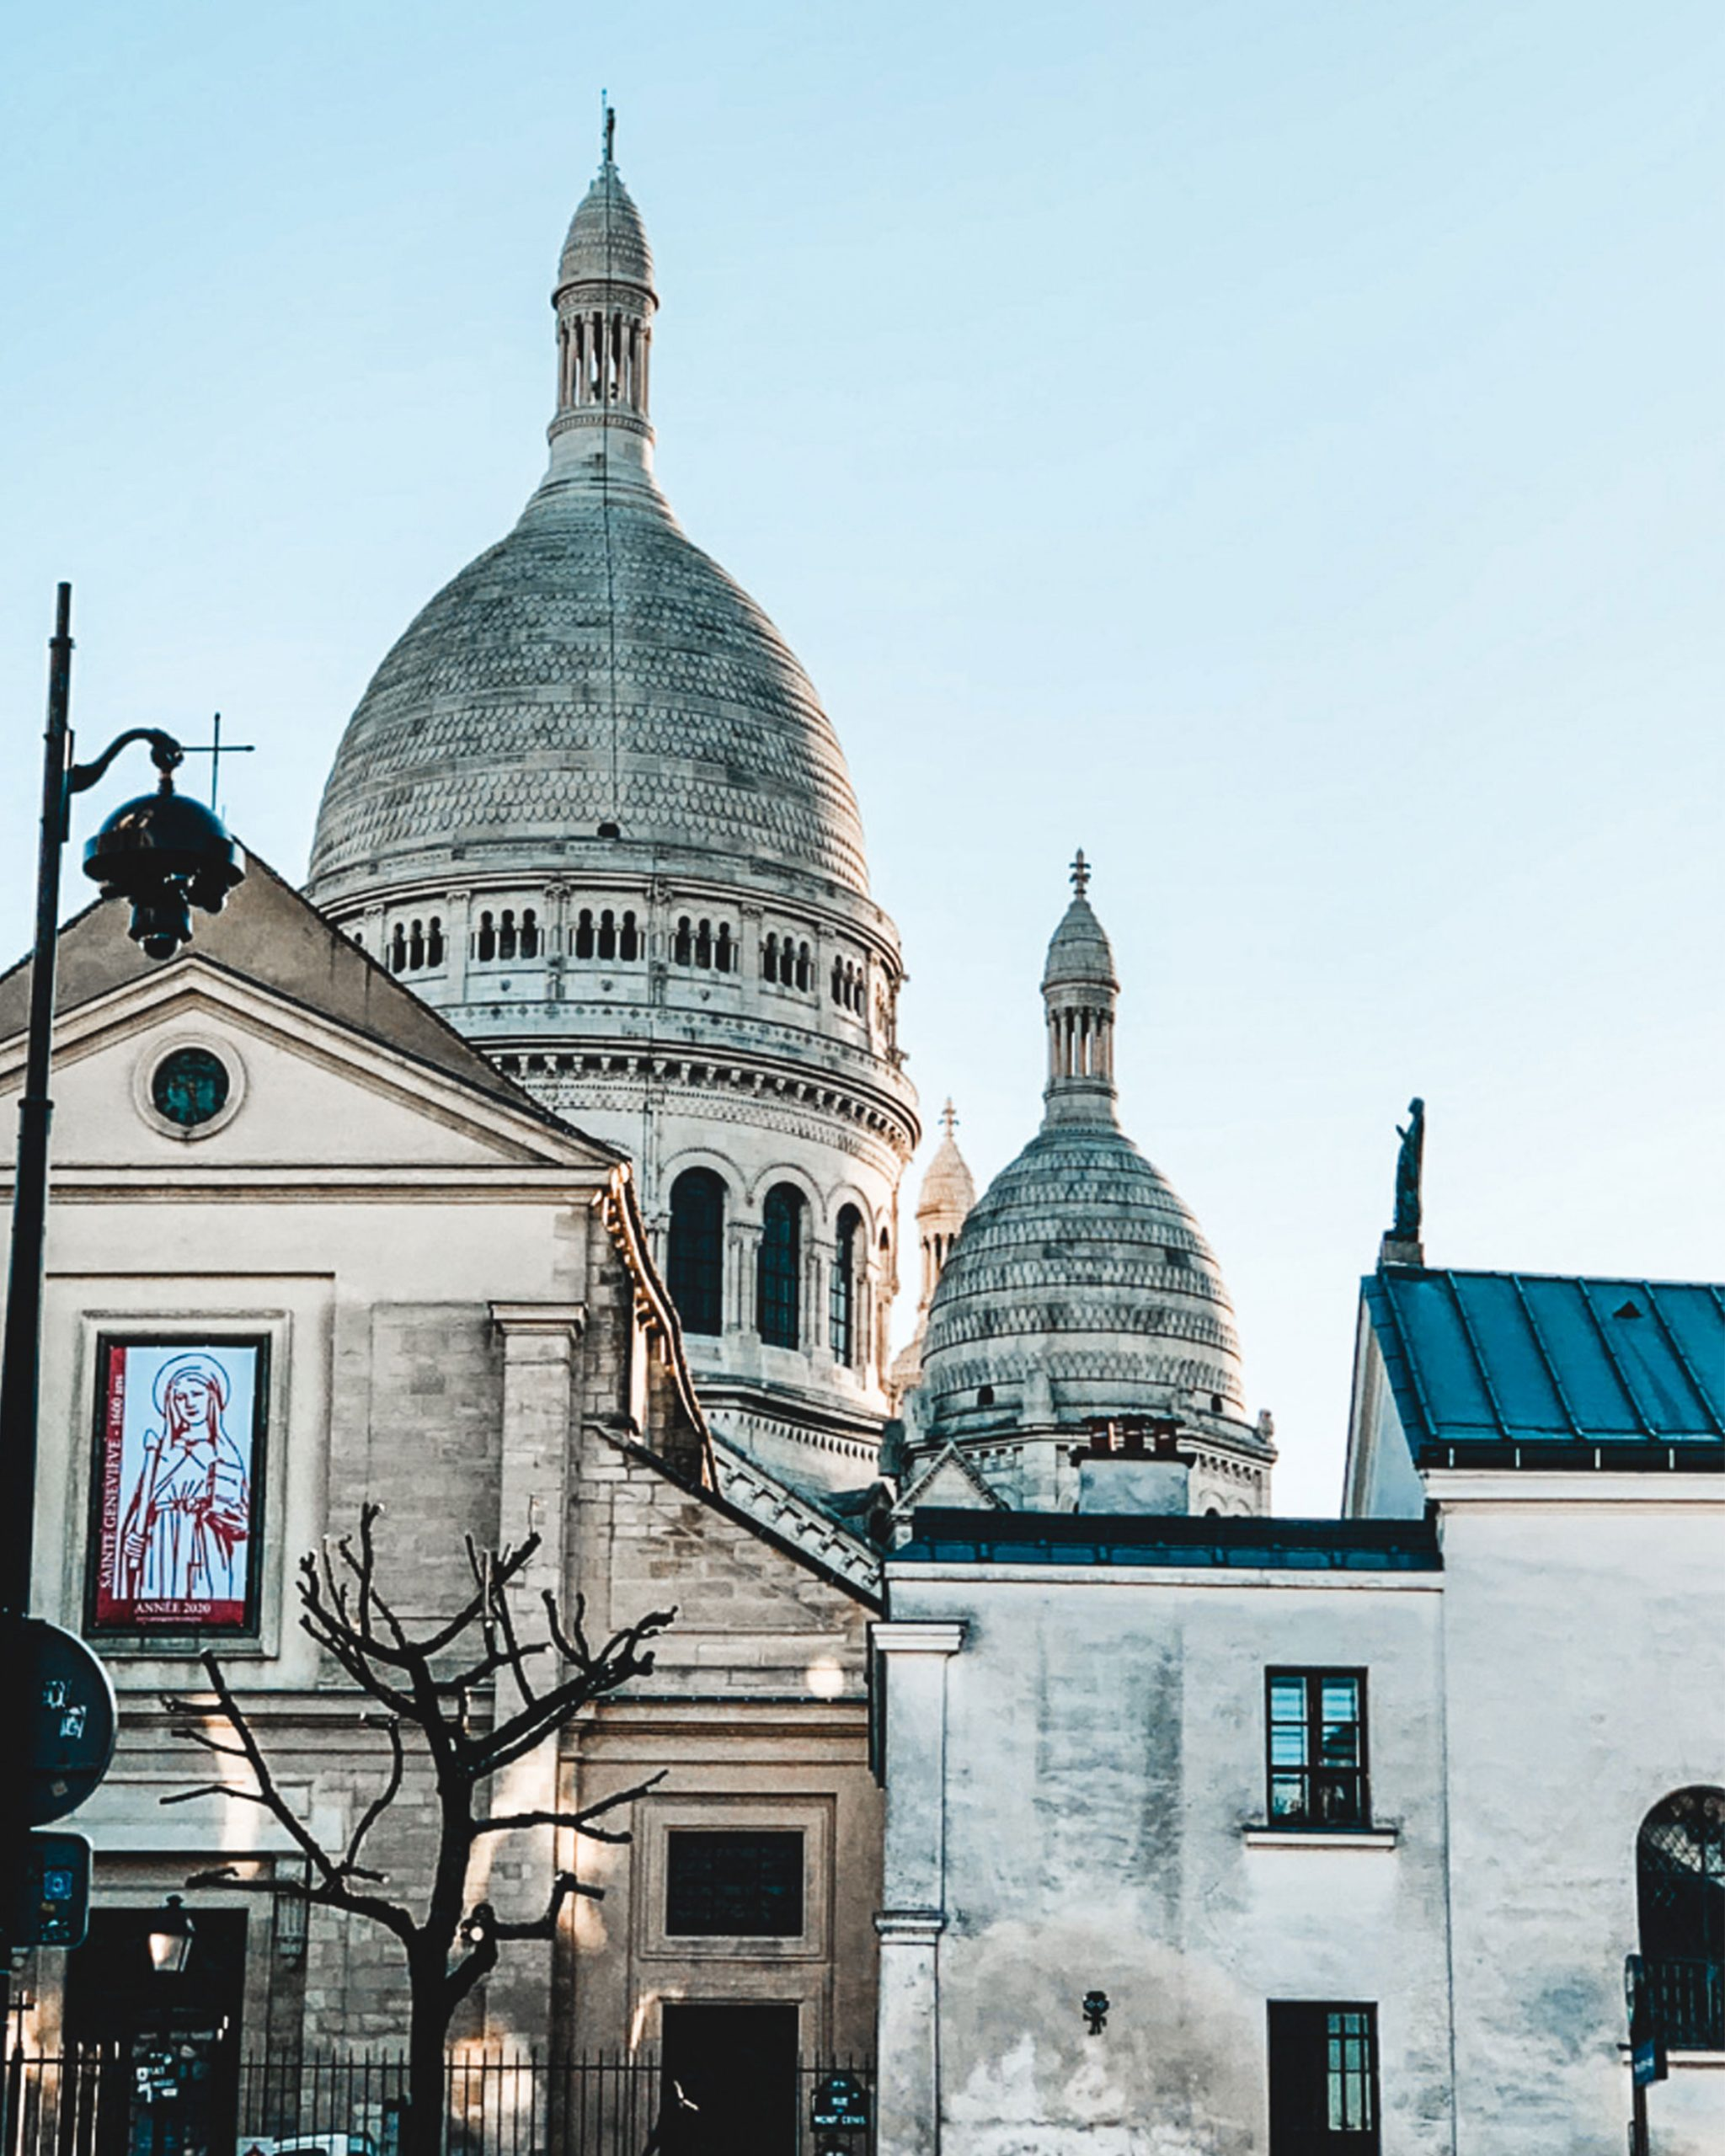 montmartre paris photography travel montmartre paris things to do, montmartre paris sacre coeur. perfect view with a sunrise. perfect itinerary for travel spot.